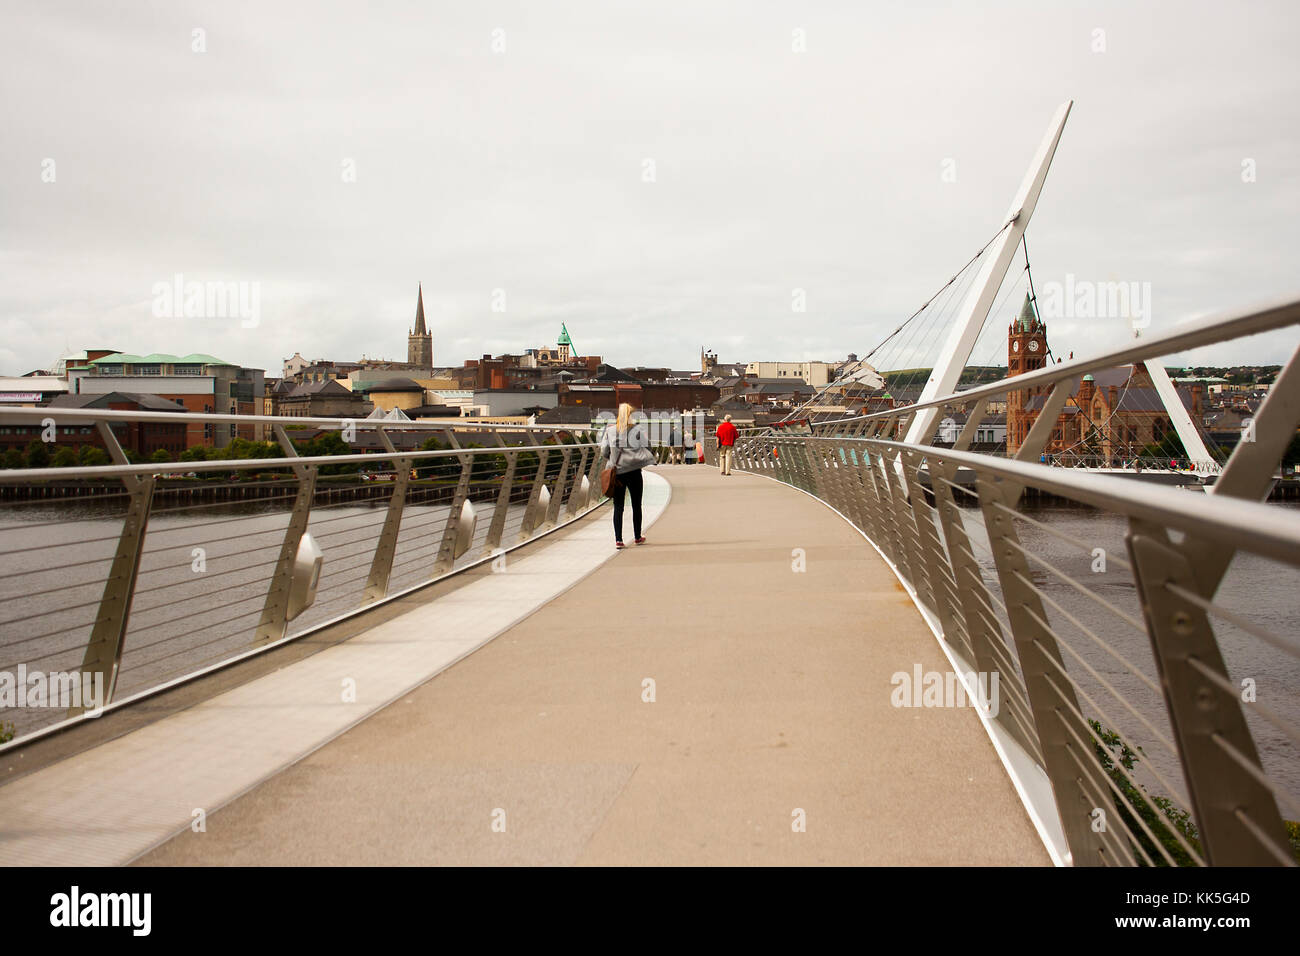 Pedestrians crossing the iconic Peace Bridge over the river Foyle in Londonderry City in Northern Ireland - Stock Image